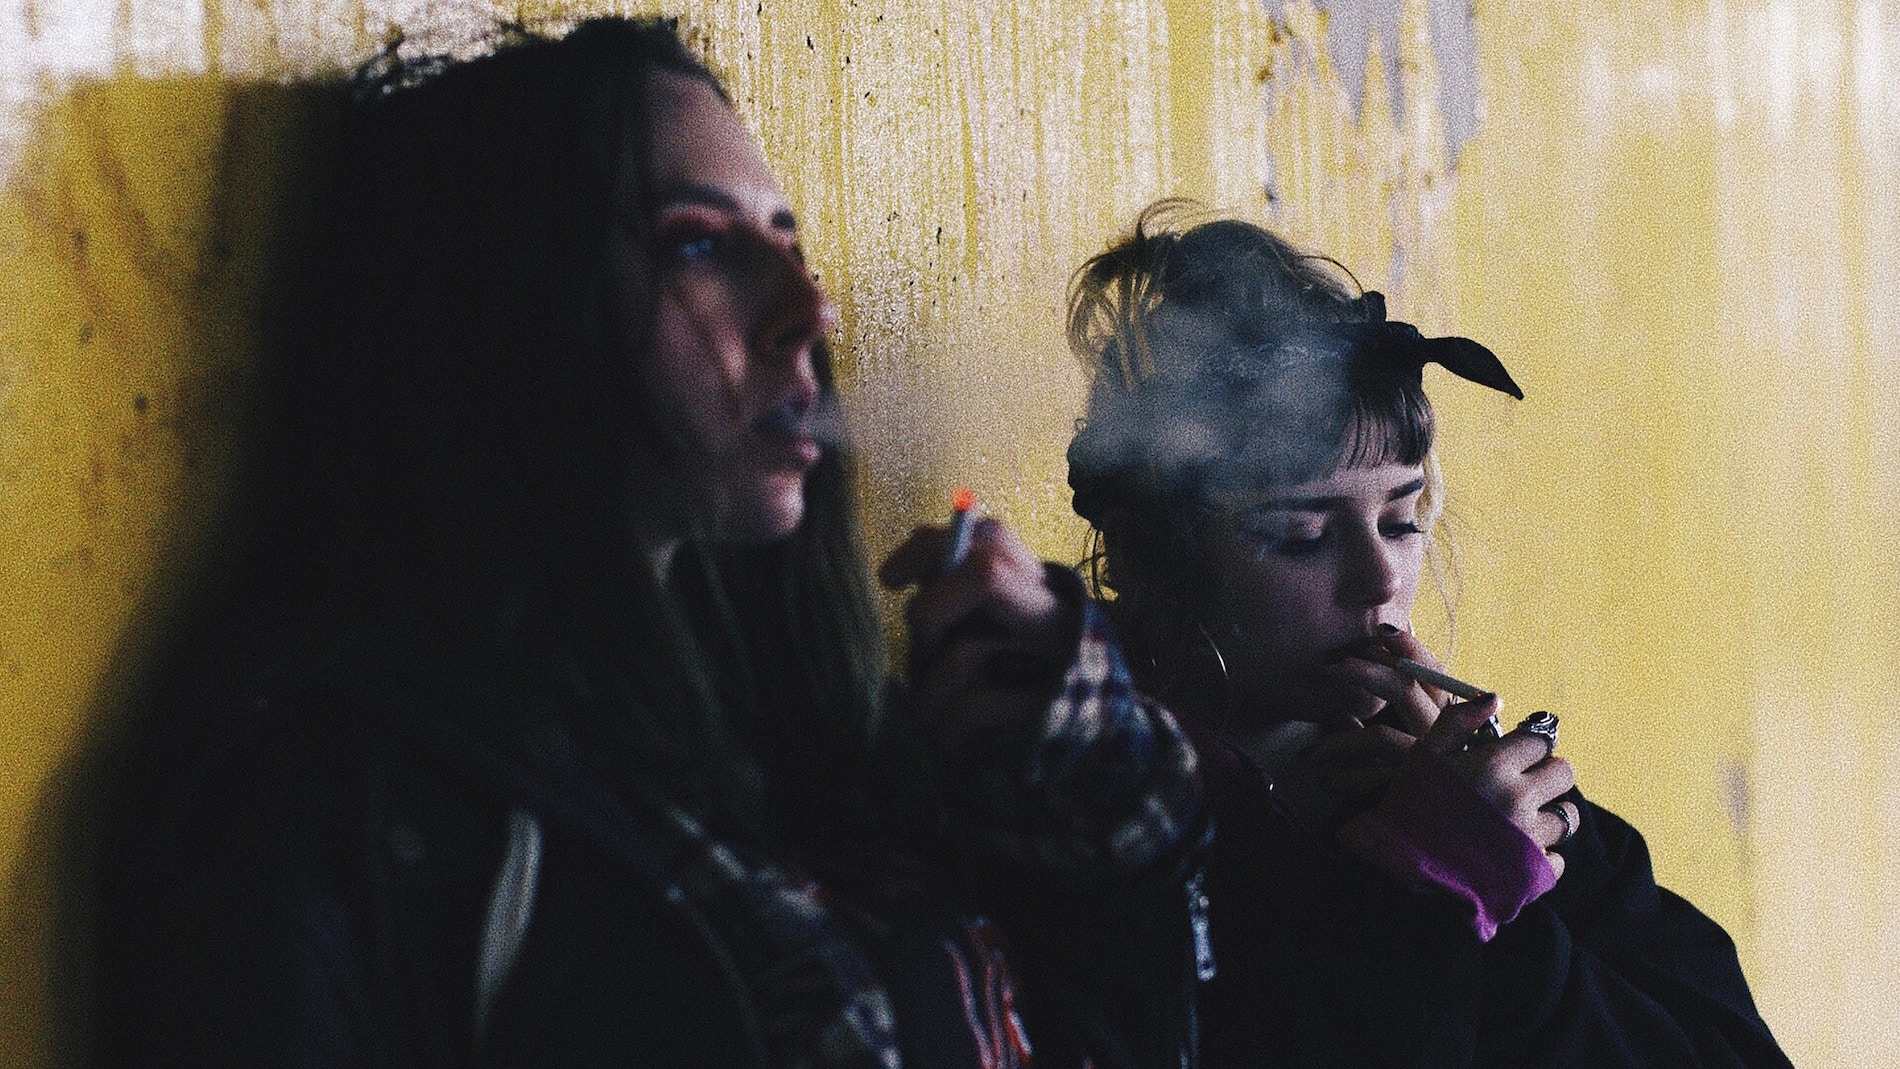 two teen girls smoking self harm up against a yellow wall